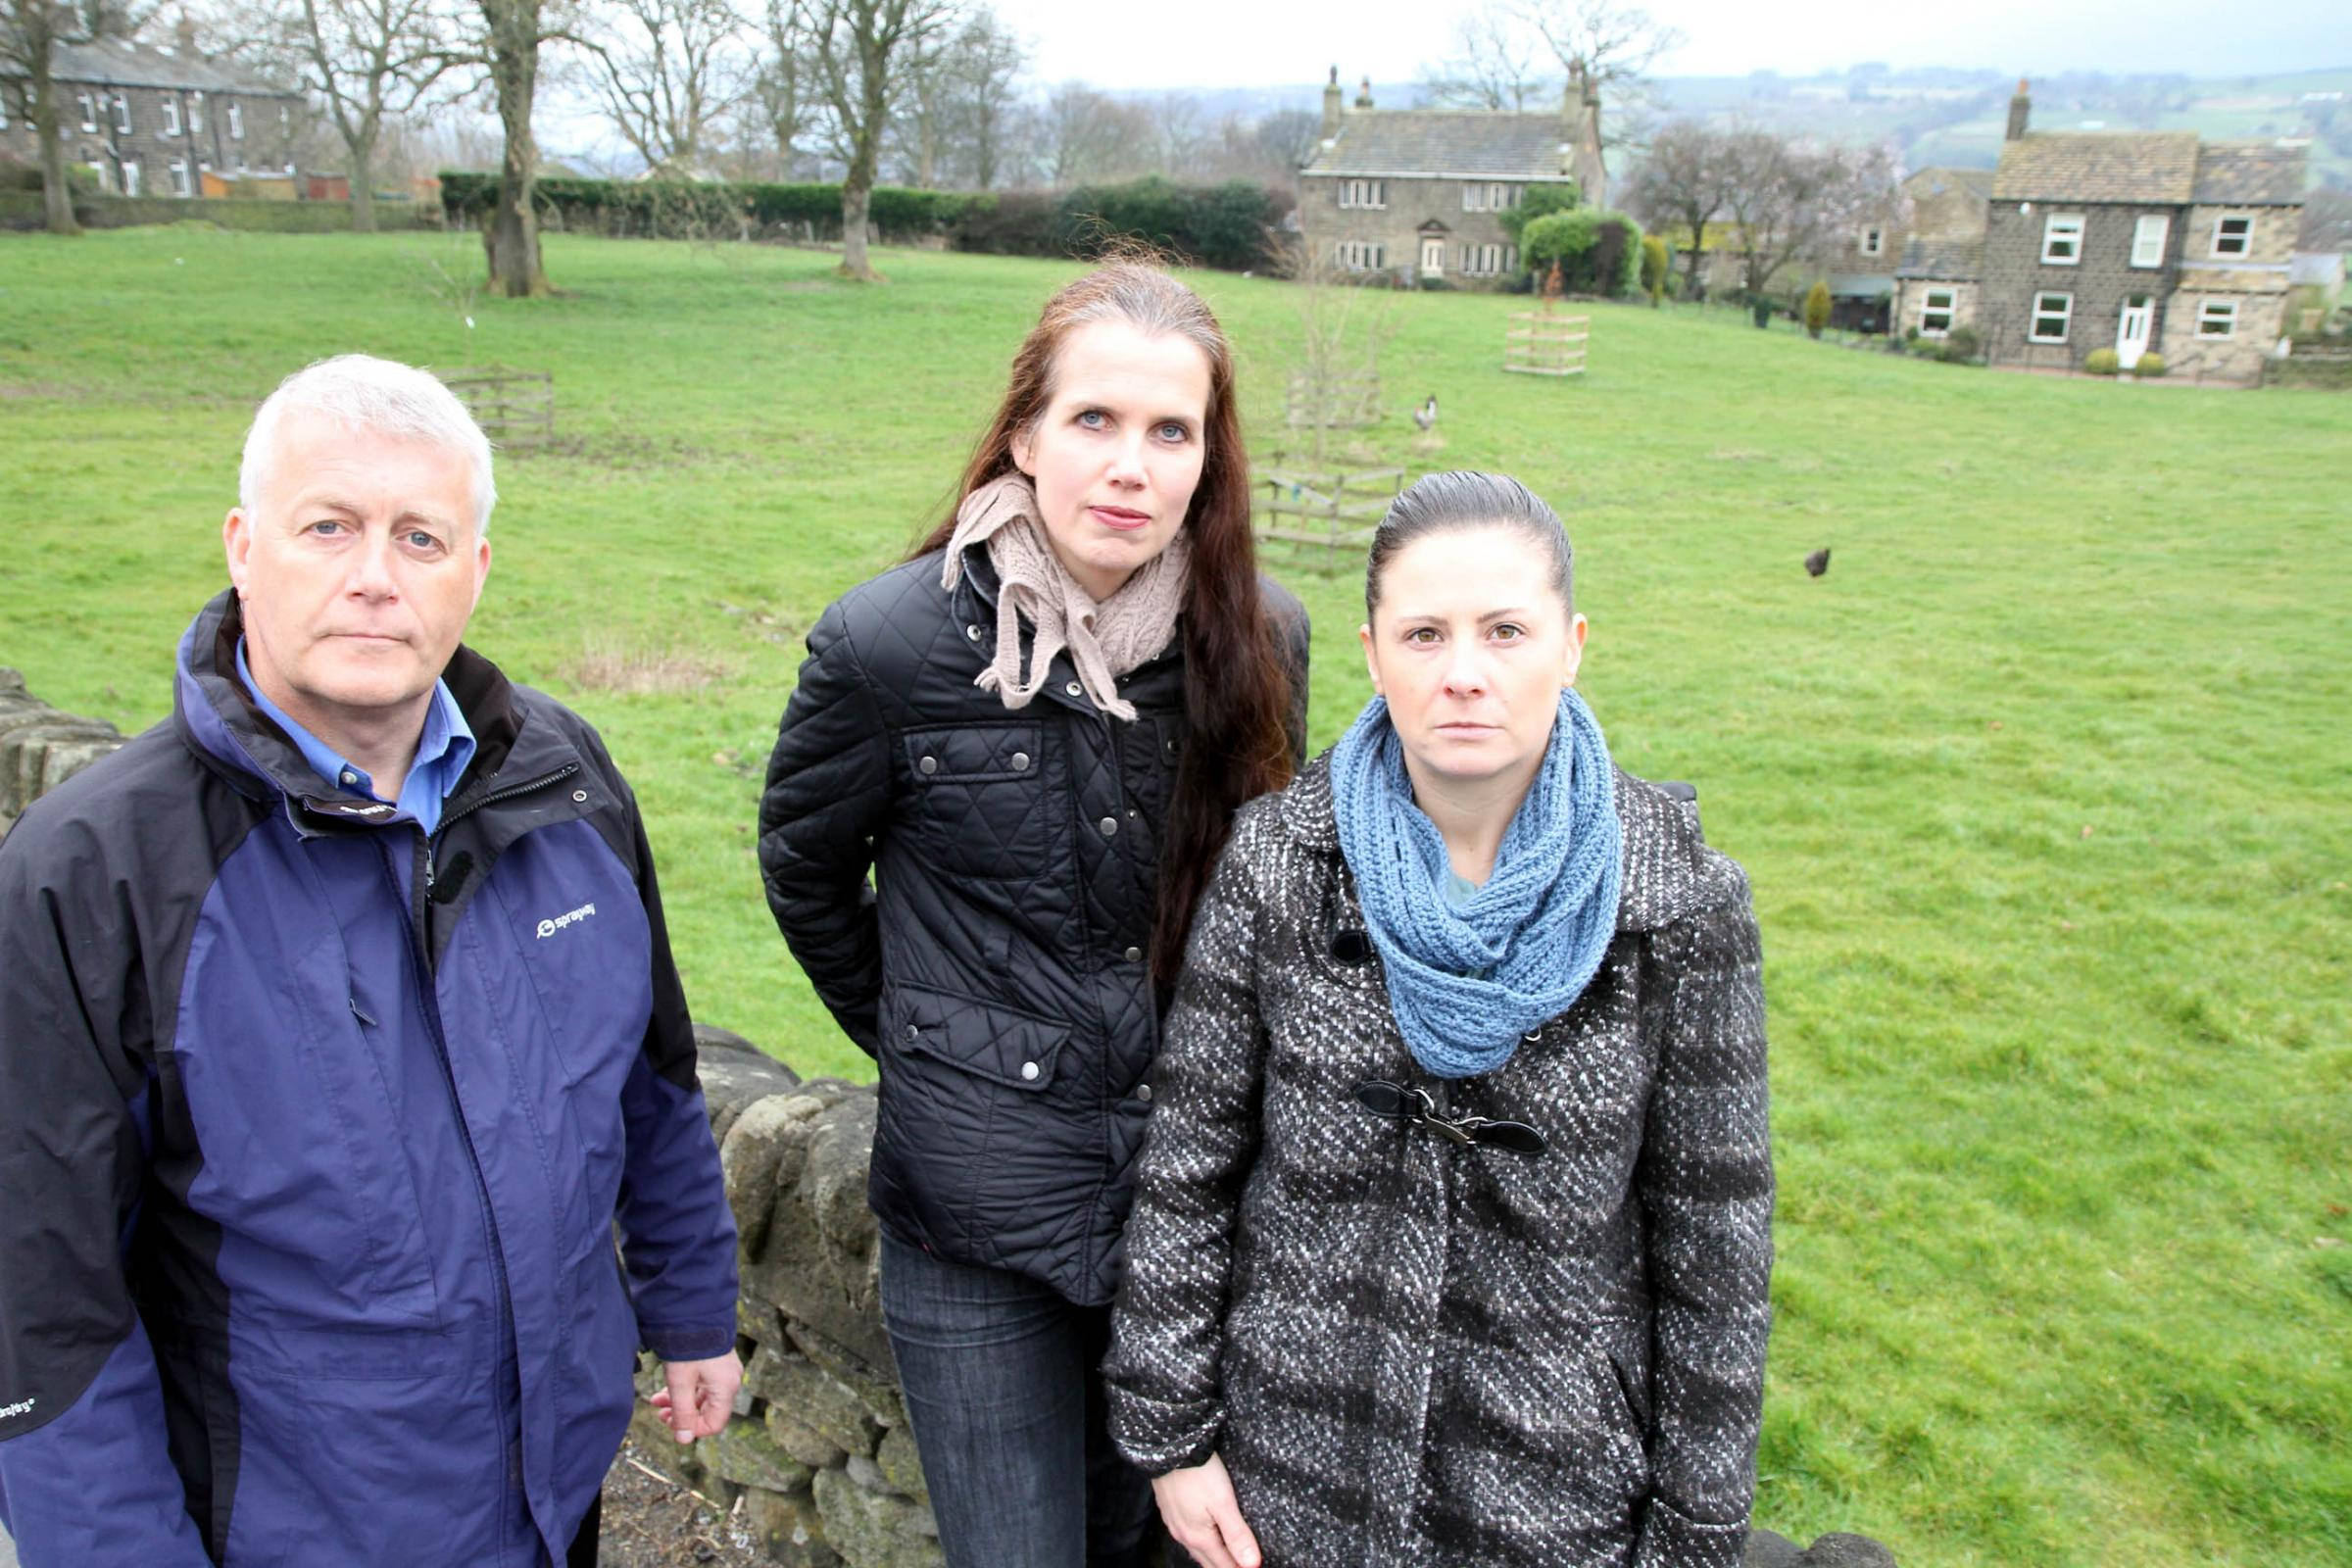 Councillor Andrew Mallinson joins Eastburn residents Kirsty Tudor and Victoria Lakin at the site of planned new housing in Eastburn